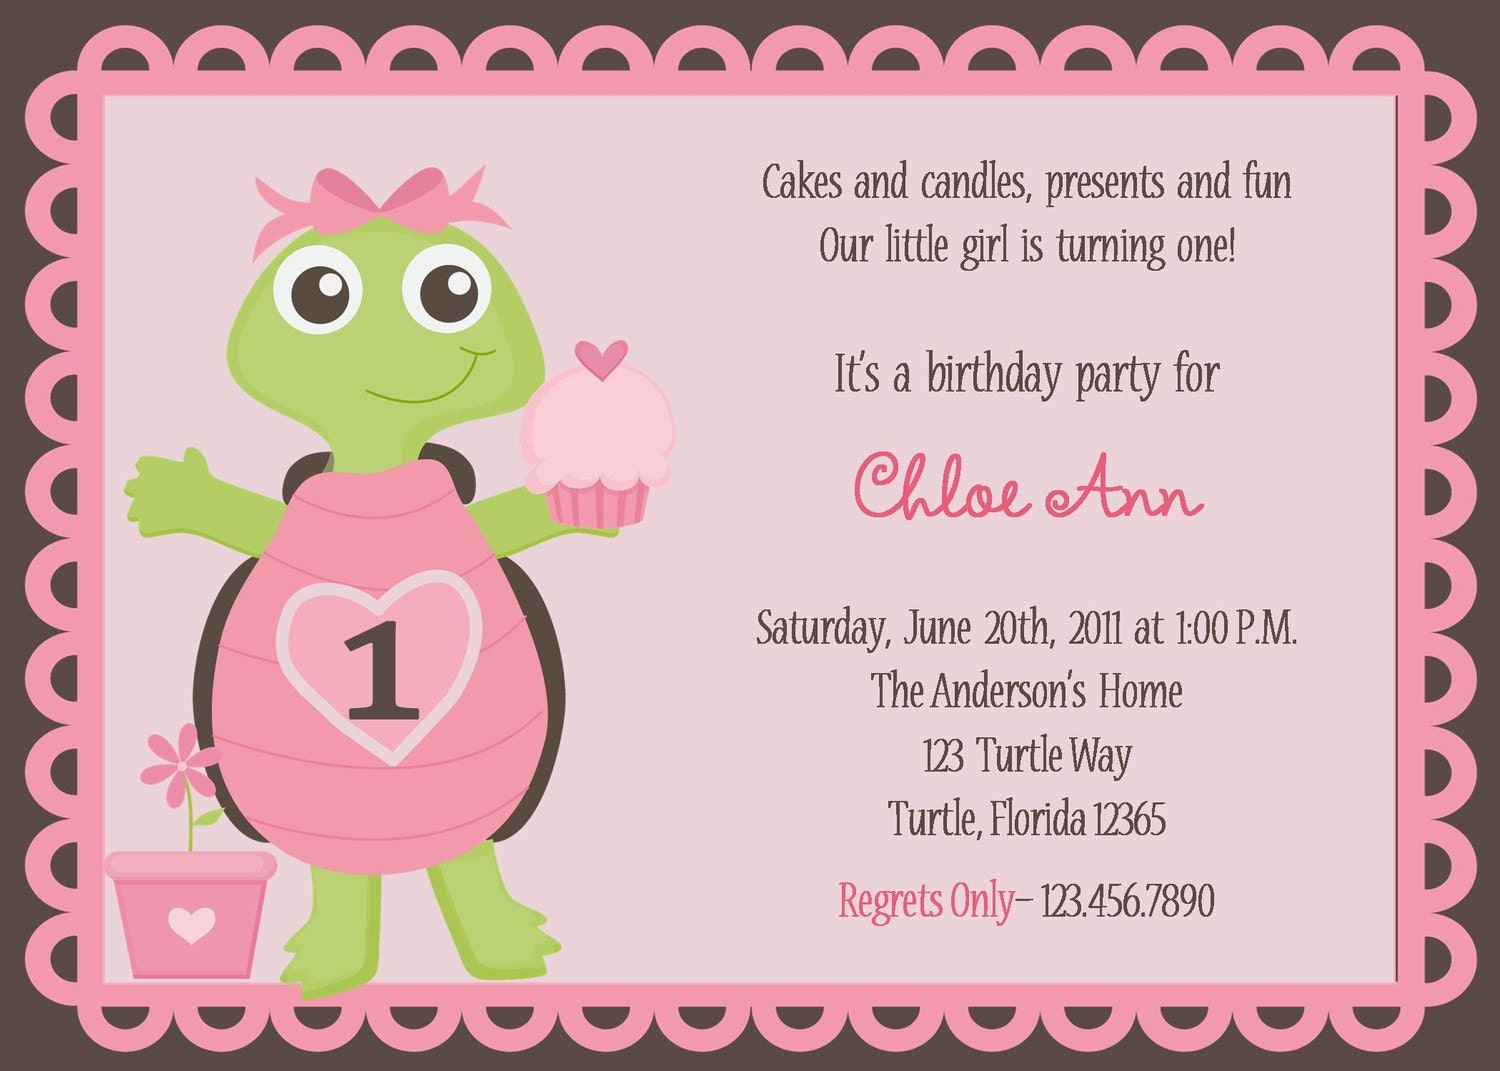 Adorable Pink Turtle Birthday Party Invitations – Turtle Birthday Invitations